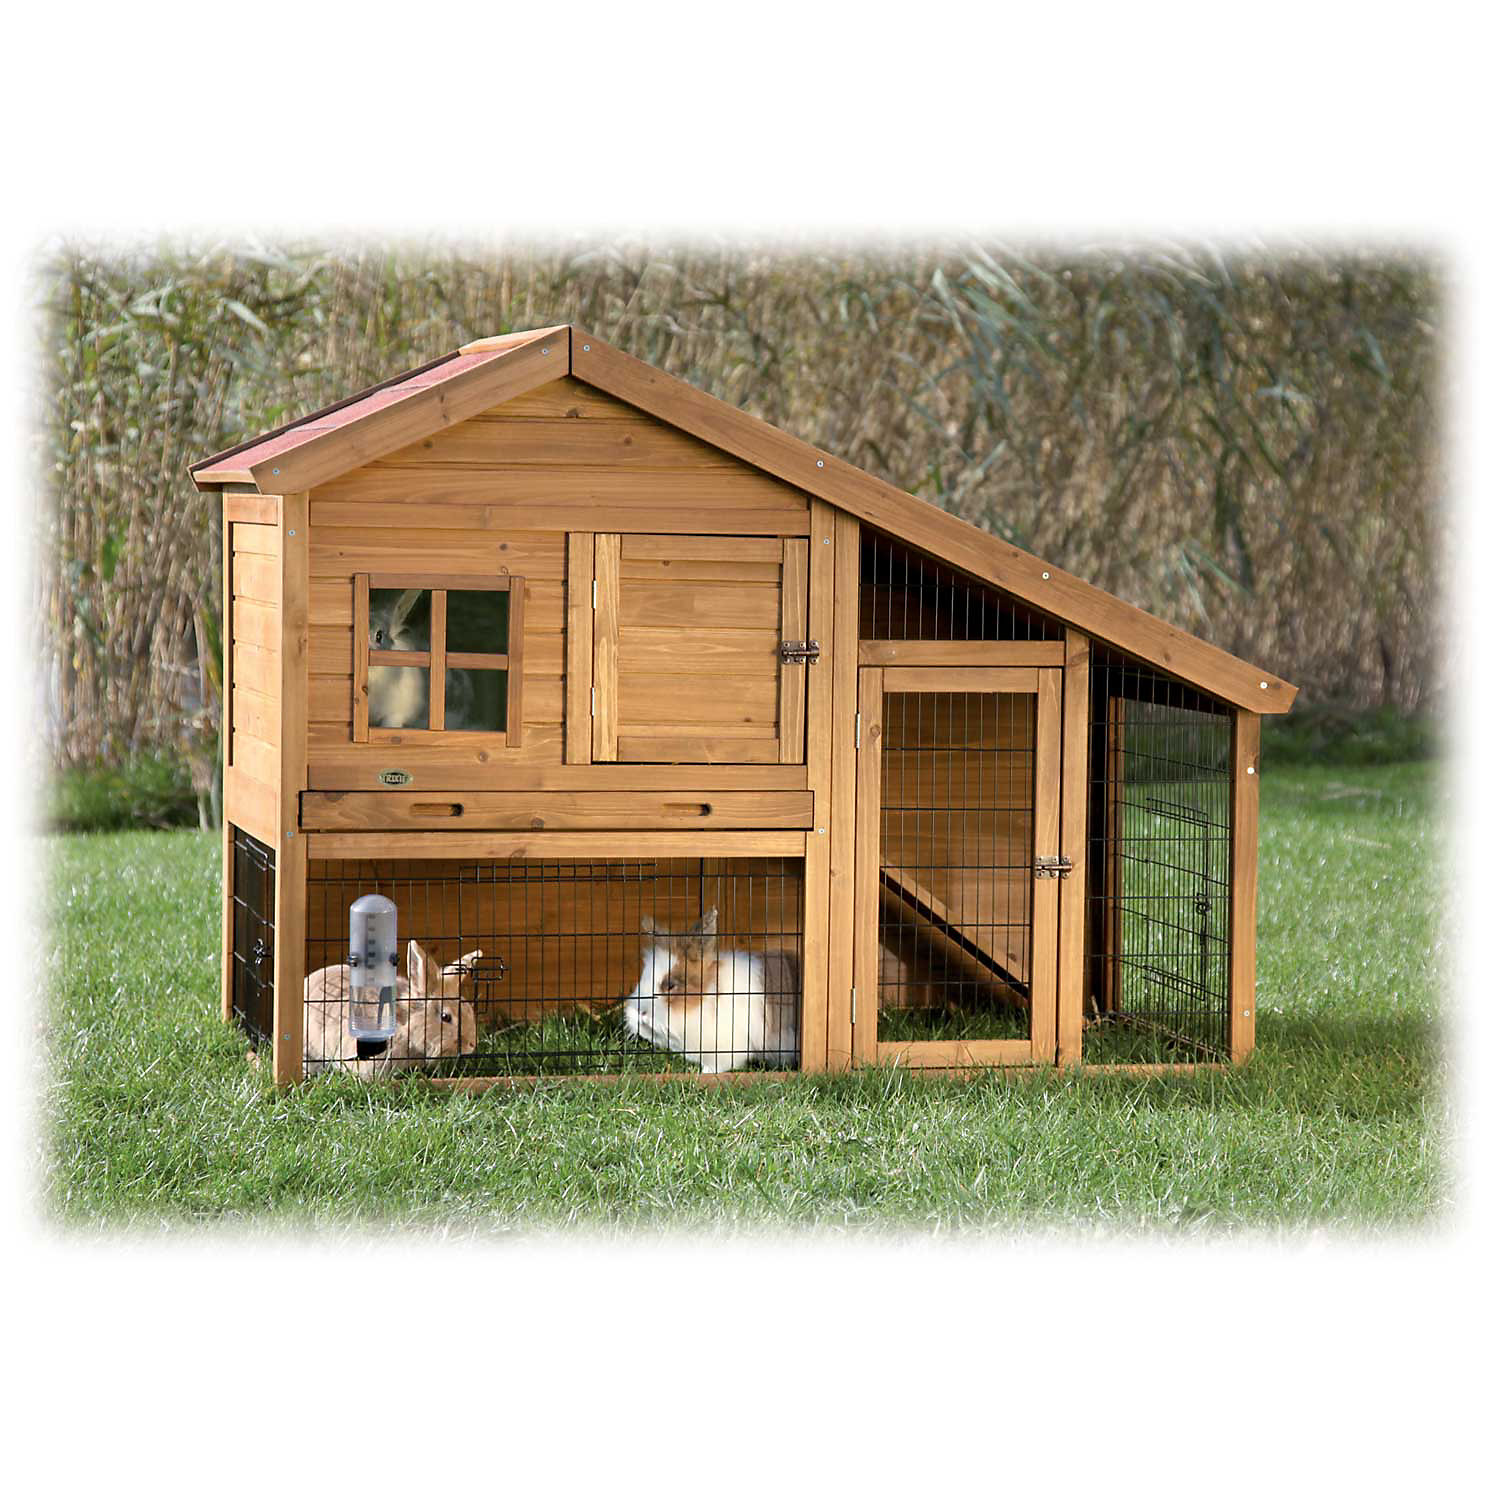 Trixie Natura Two Story Sloped Roof Rabbit Hutch with Run 59.25 L X 42W X 31.5 H Brown